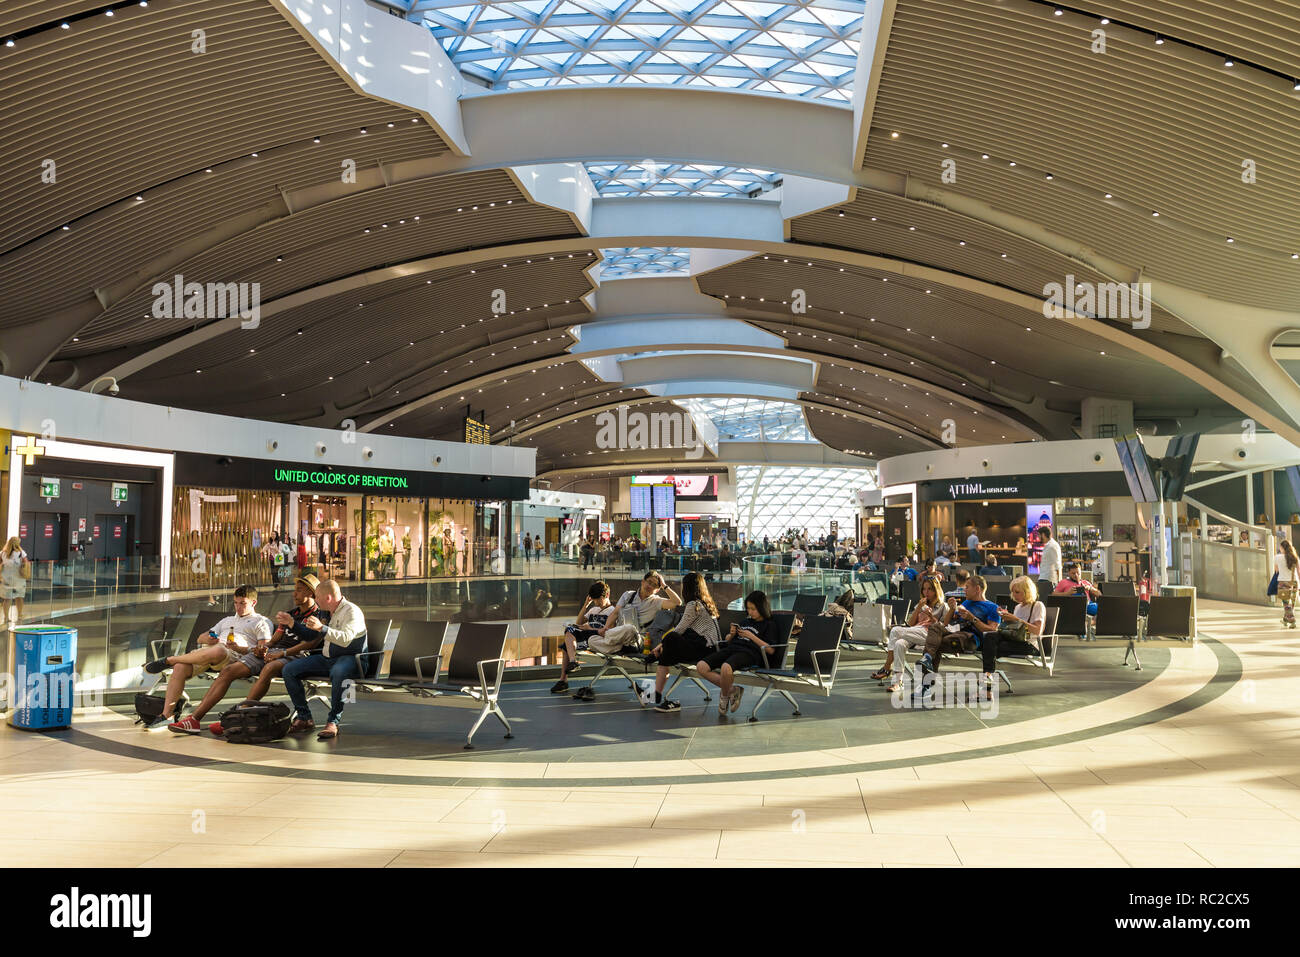 Rome Fiumicino international airport. People waiting for flights and connections inside the terminal with duty free shops and restaurants. - Stock Image